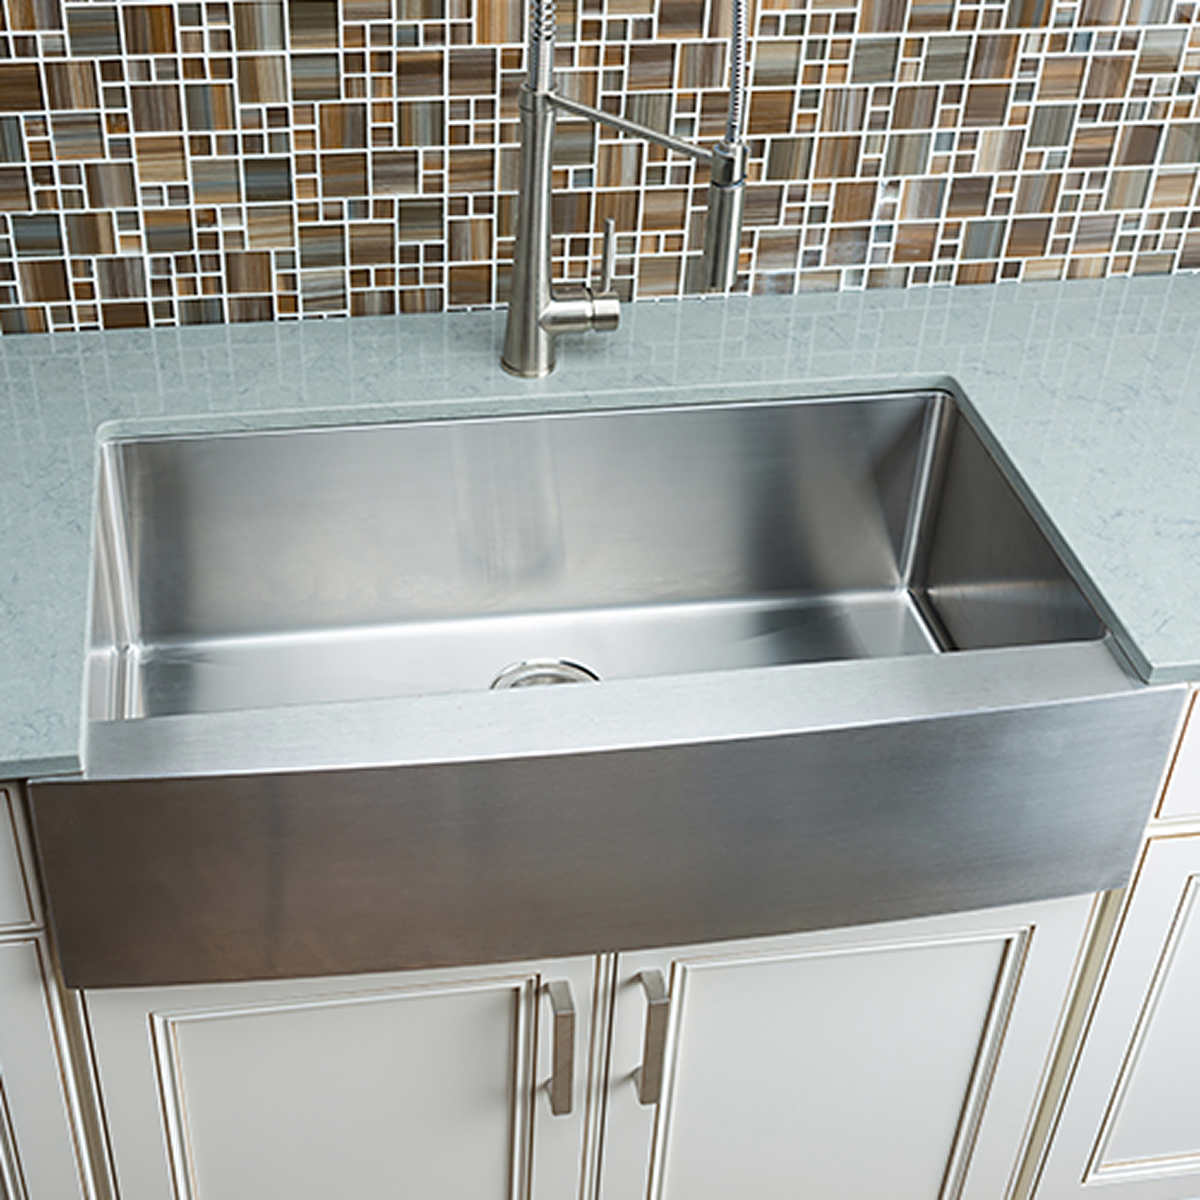 kitchen sinks kitchen sink sizes Hahn Chef Series Handmade Extra Large Single Bowl Farmhouse Sink